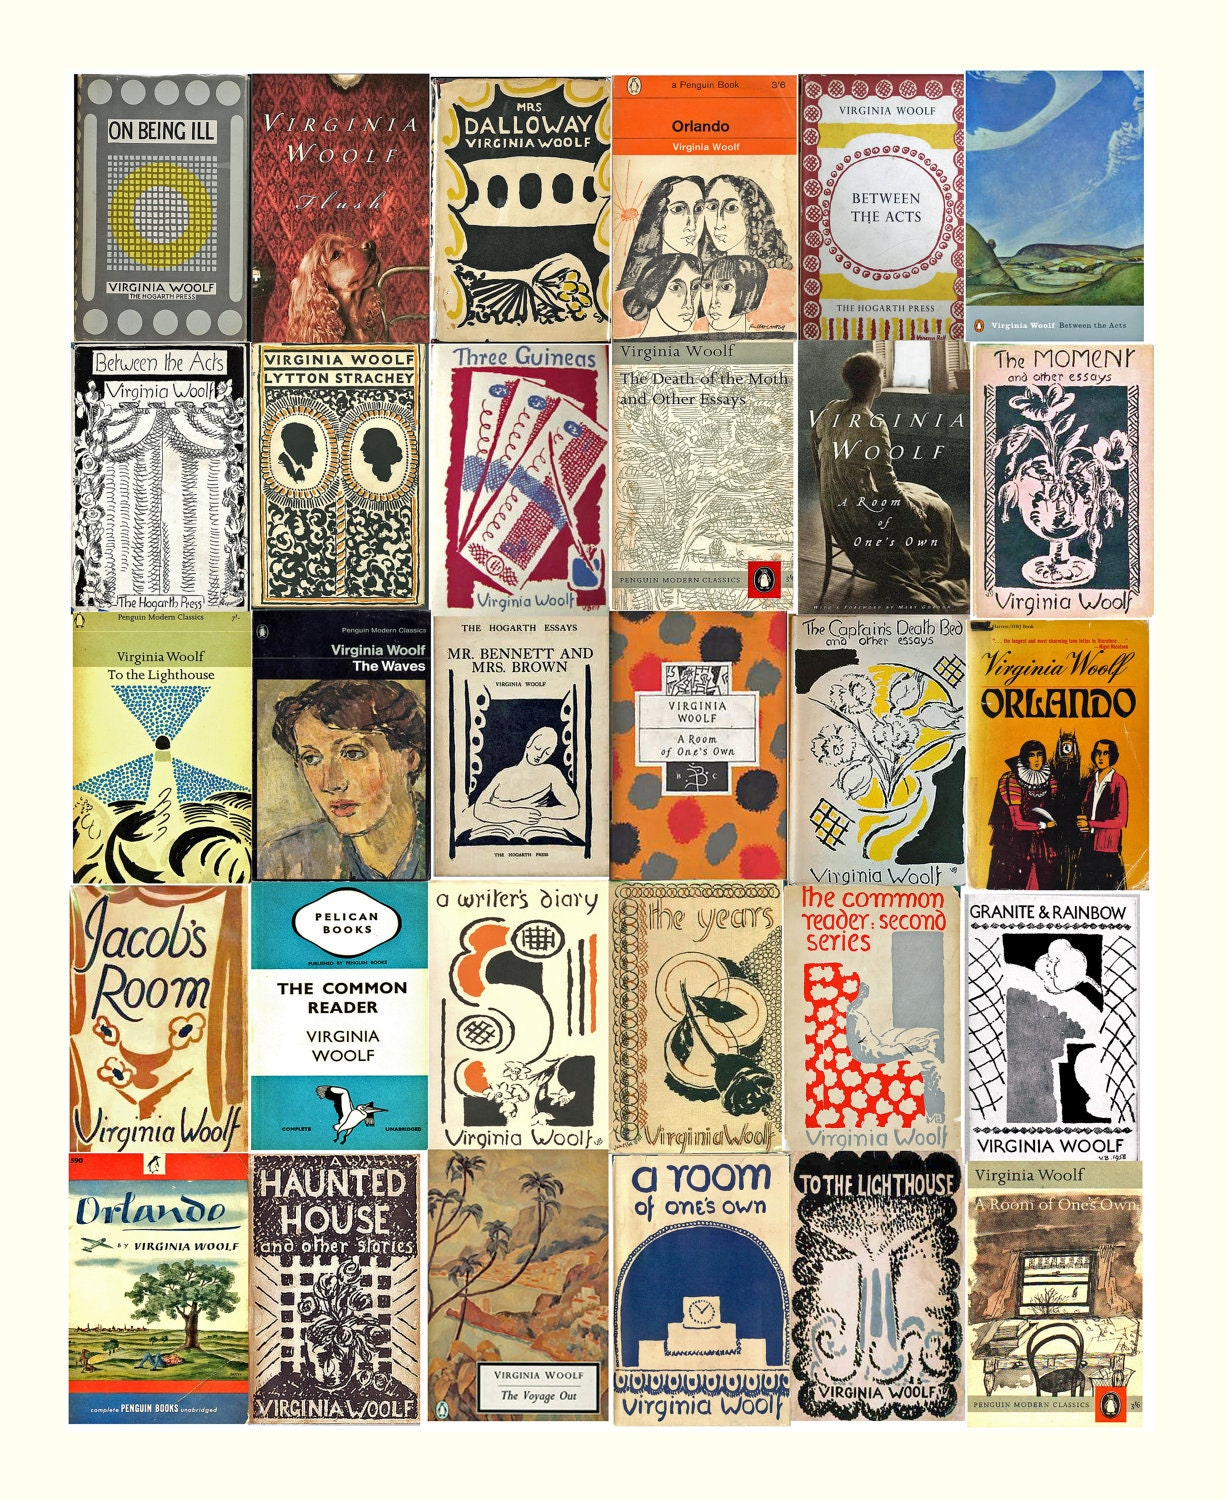 Vc Andrews Book Cover Art ~ Virginia woolf book covers fine art print inches